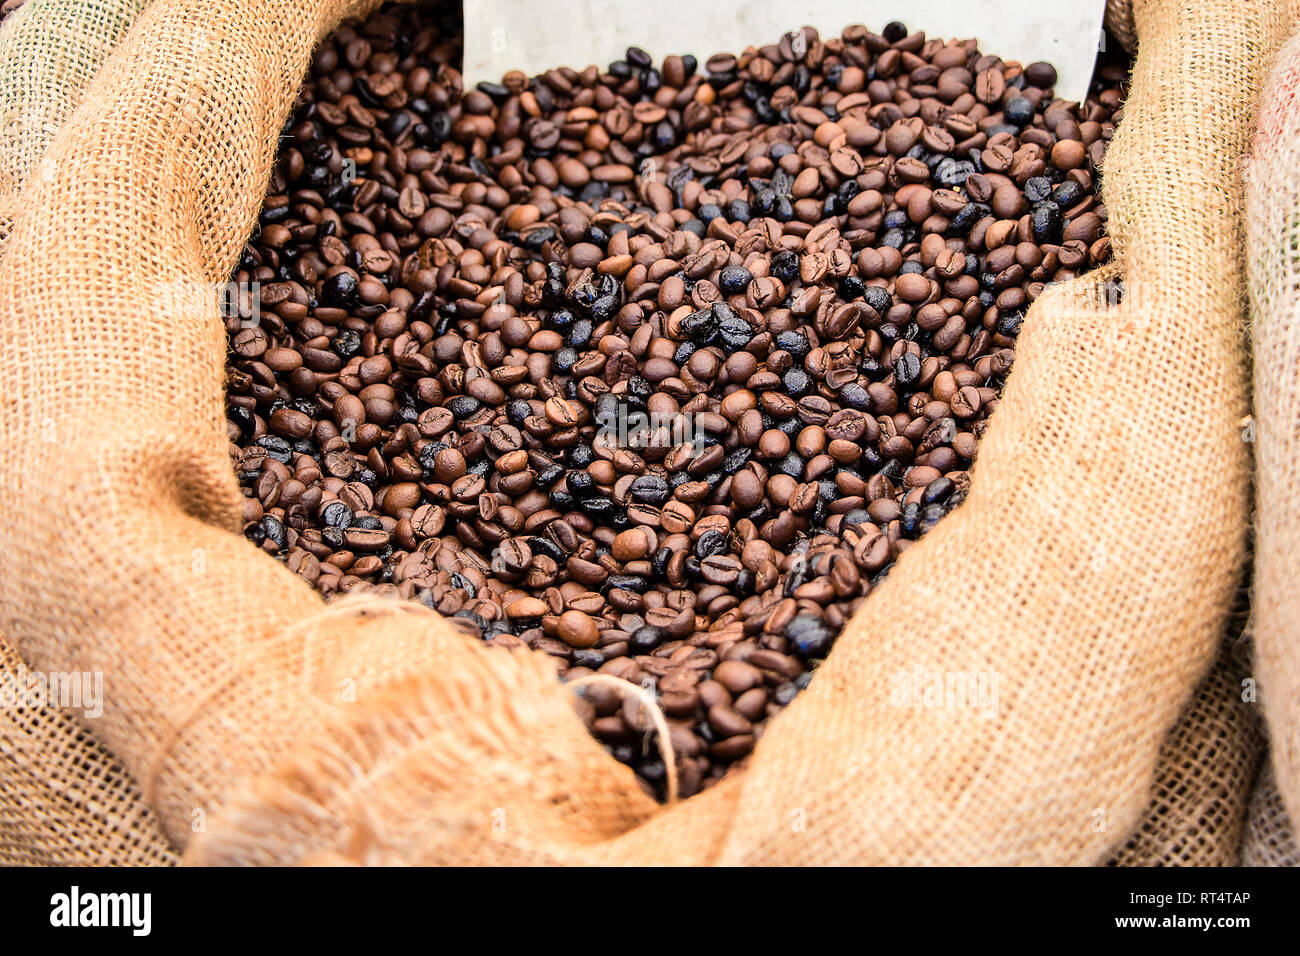 Mixed Roasted coffee beans in a bag - Stock Image